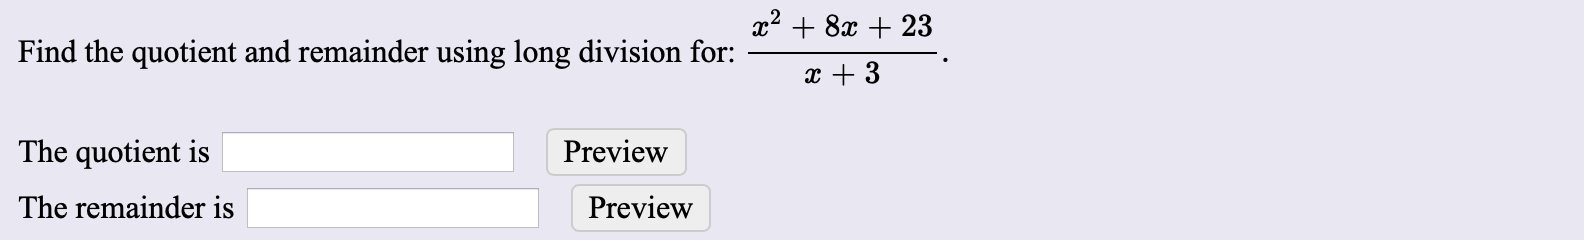 x28x23 Find the quotient and remainder using long division for: The quotient is Preview The remainder is Preview